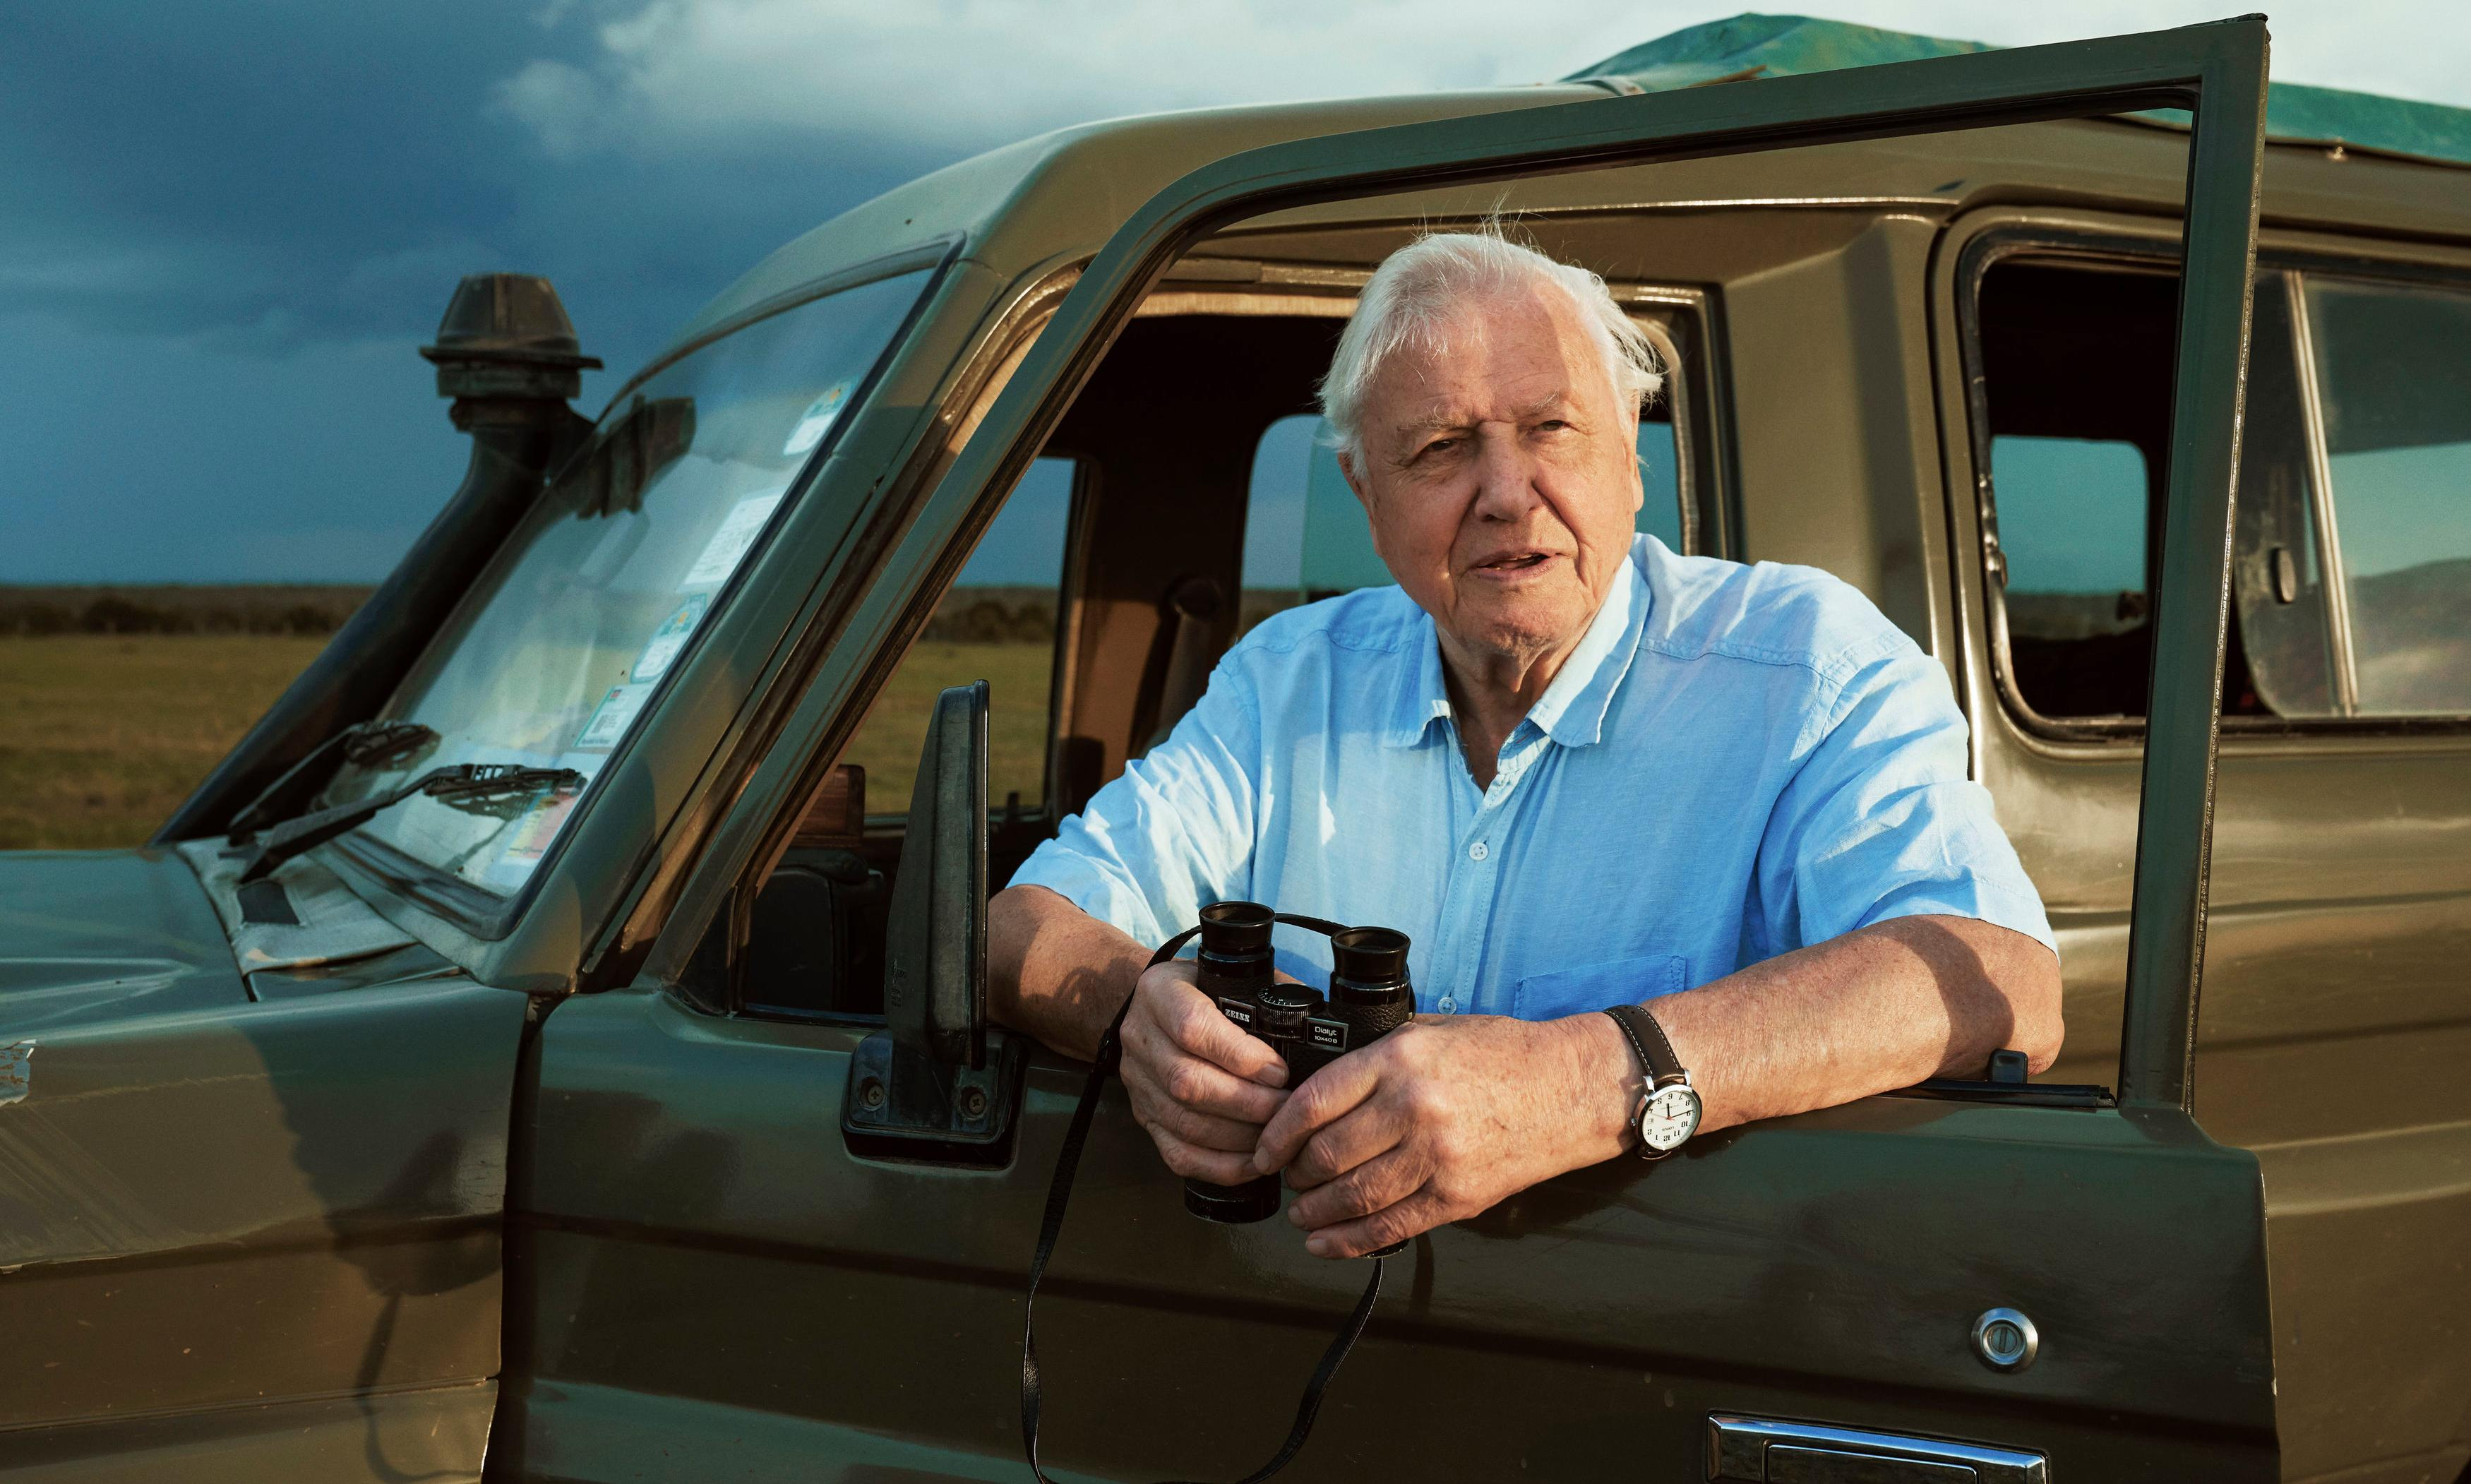 'Just don't waste': David Attenborough's heartfelt message to next generation